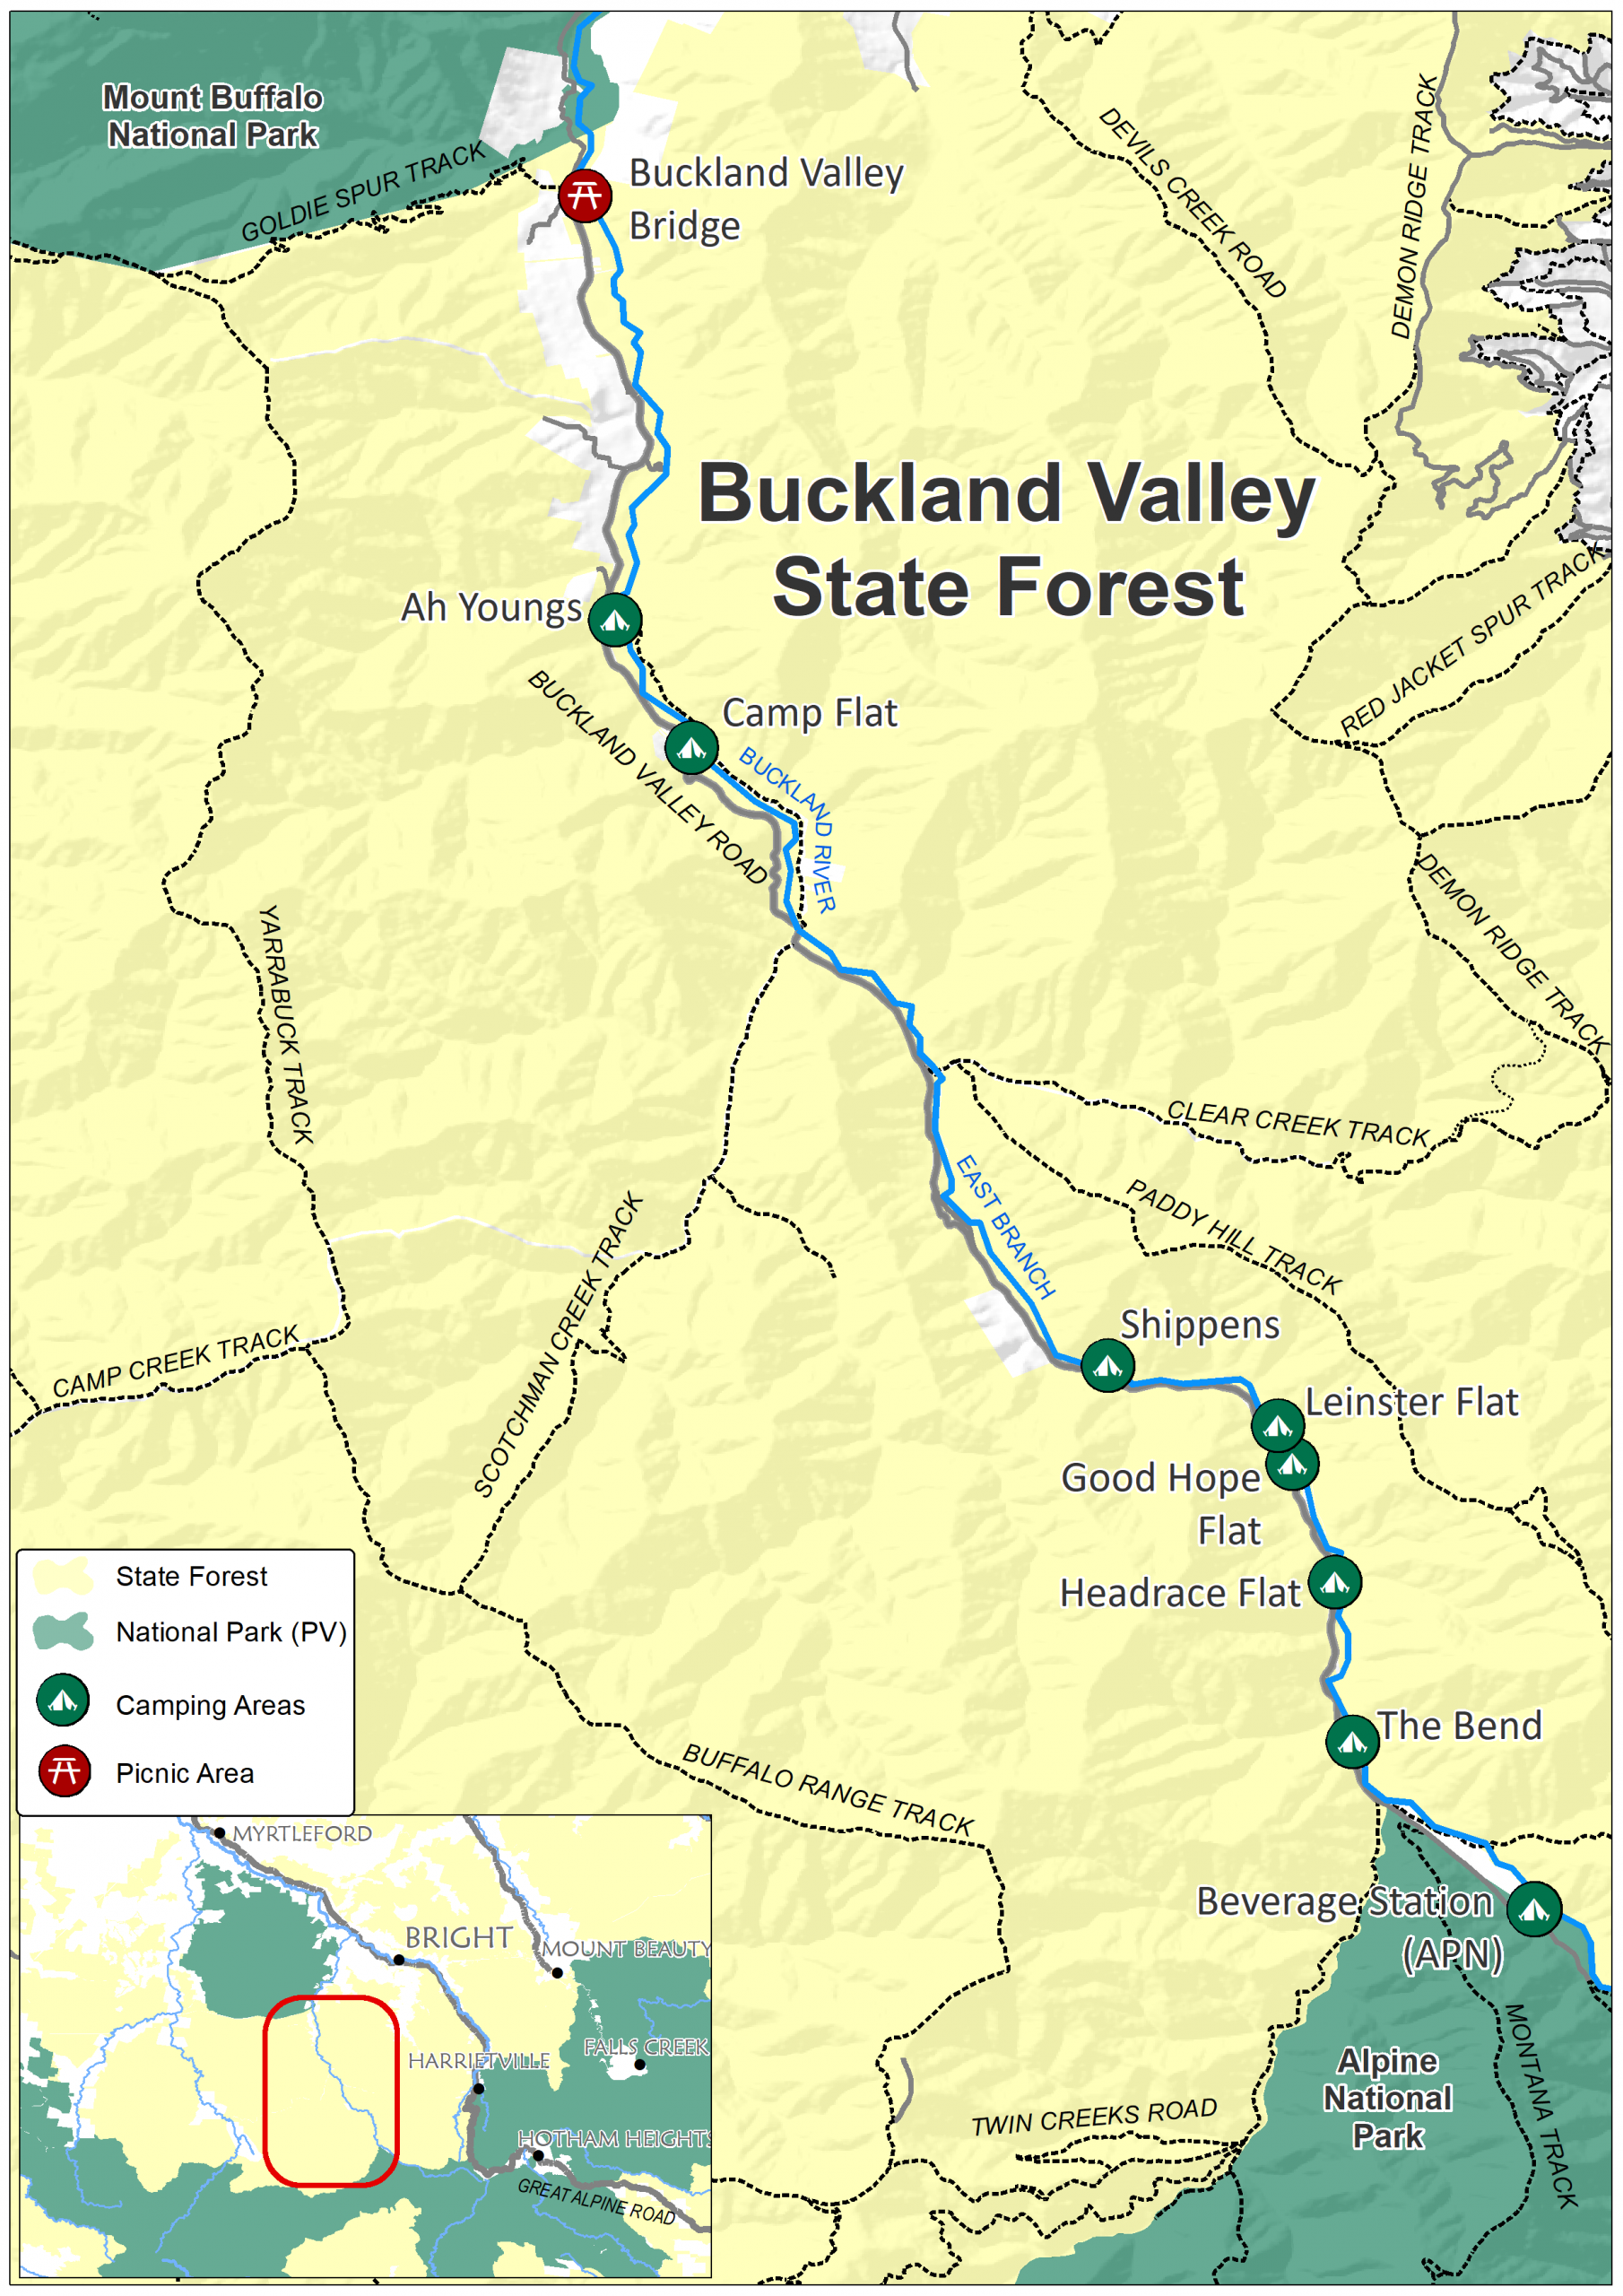 Map identifying the formal campgrounds in the Buckland Valley State Forest